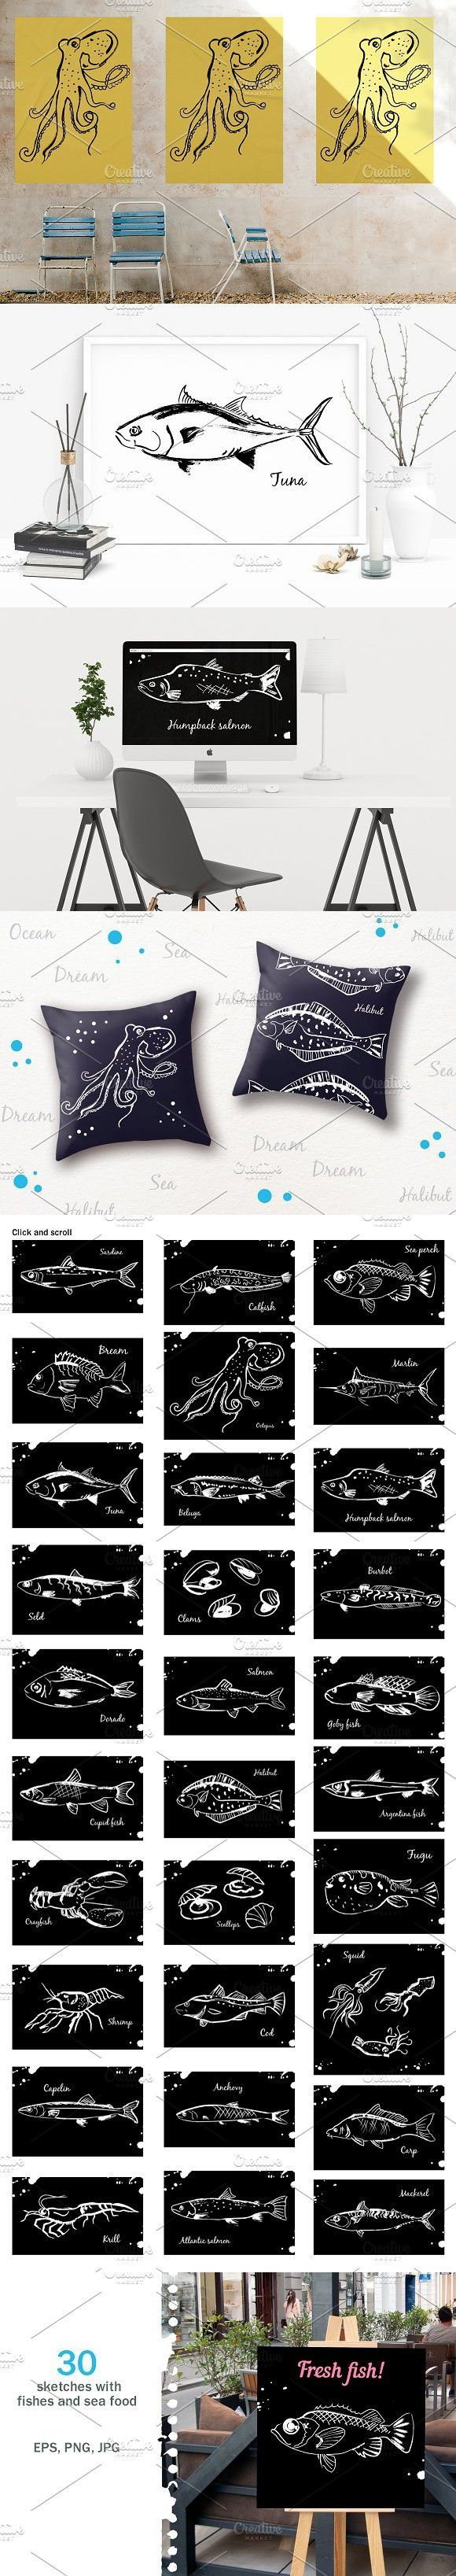 sketches with fishes and sea food puppy training pinterest